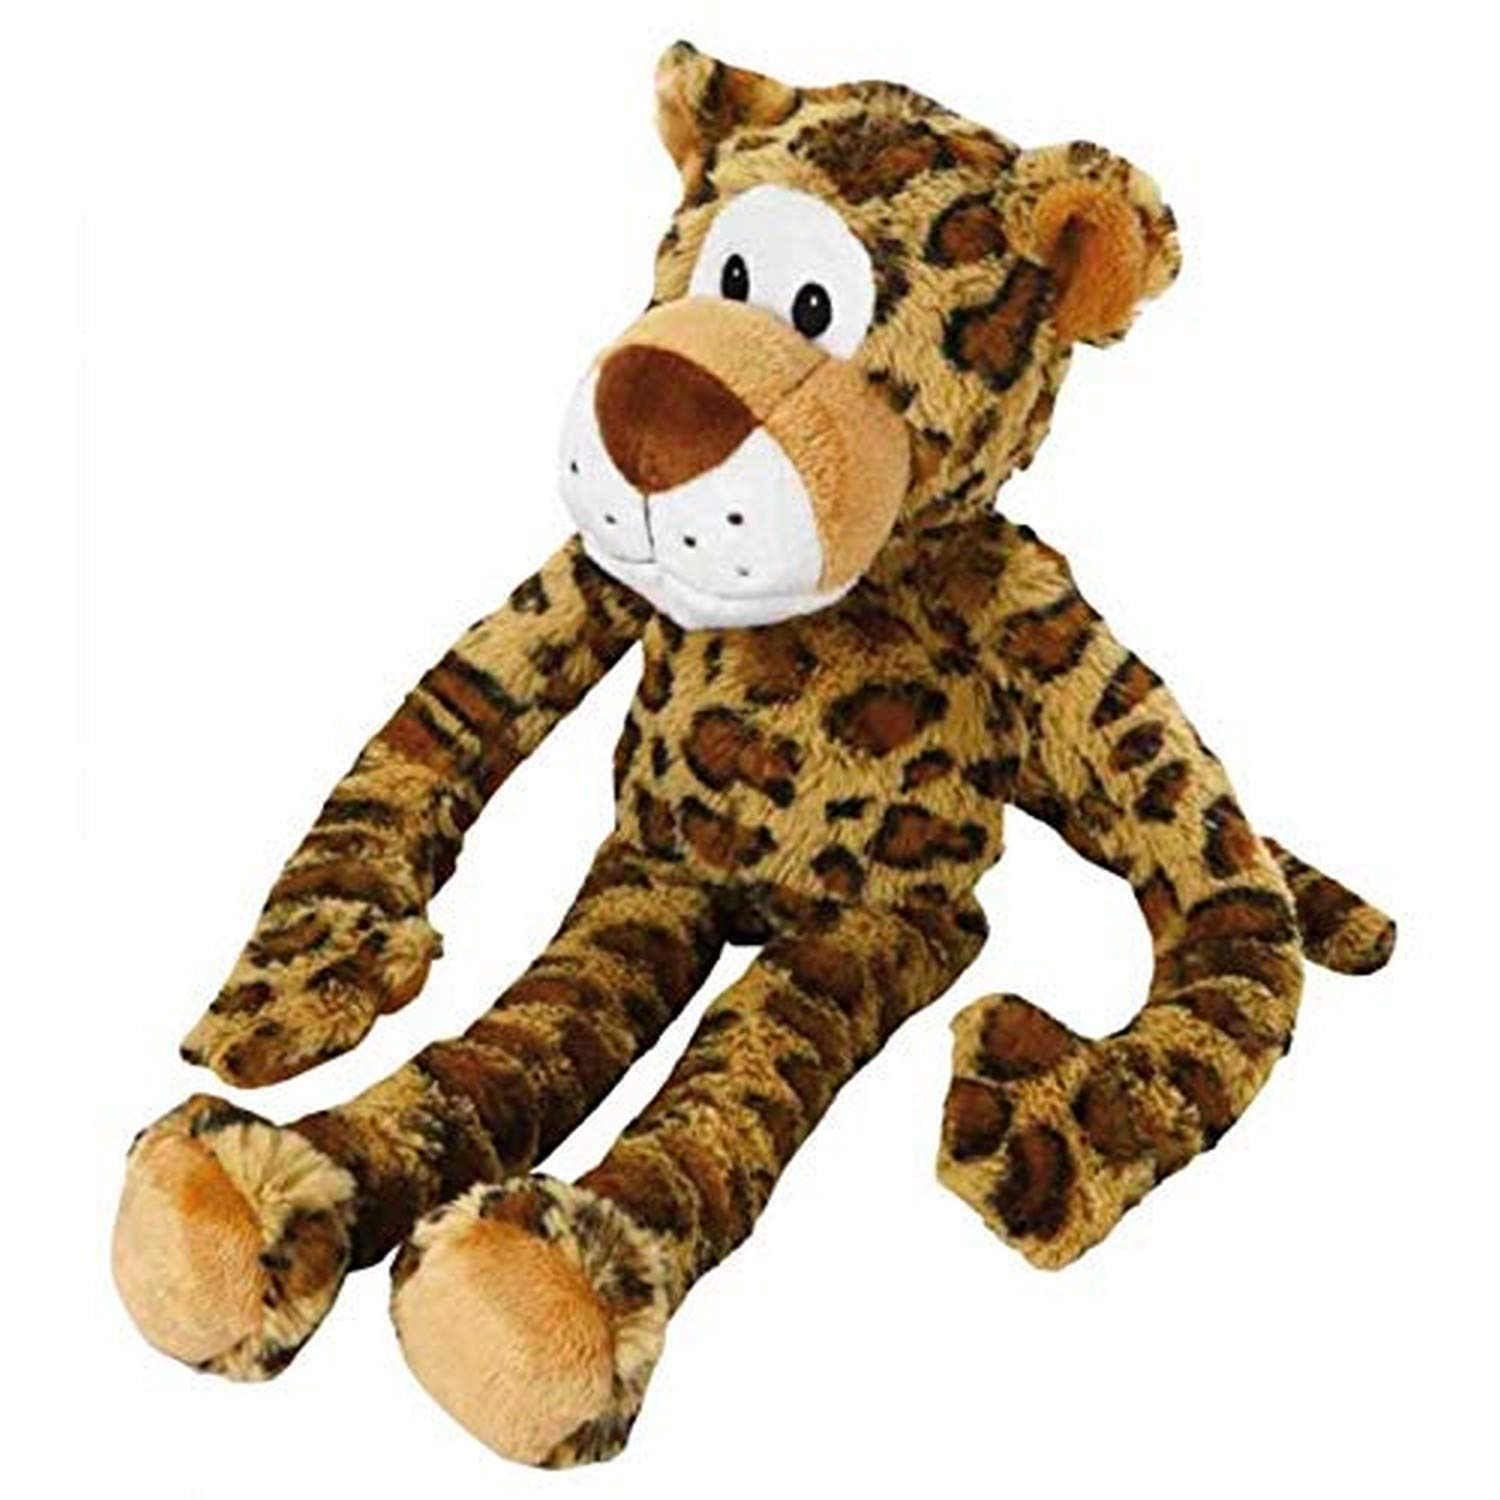 Multipet Swingin 19-Inch Large Plush Dog Toy with Extra Long Arms and Legs with Squeakers